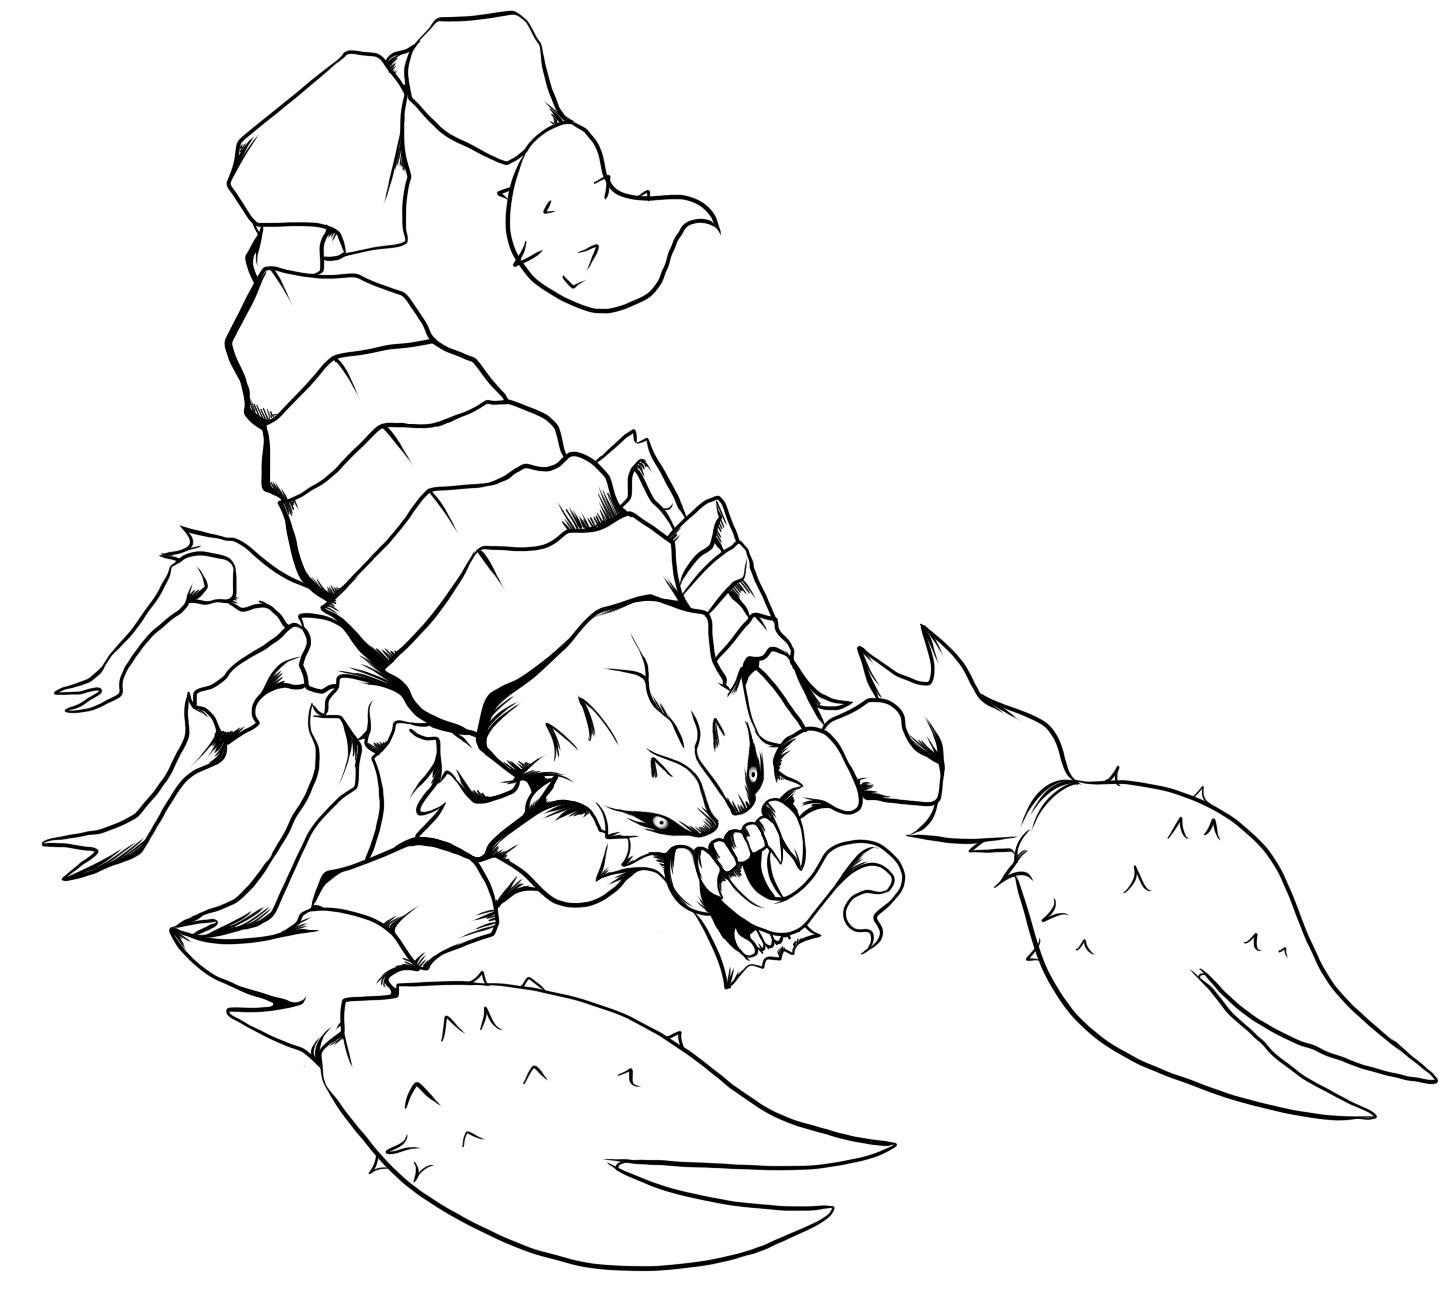 1440x1293 Free Printable Scorpion Coloring Pages For Kids Throughout